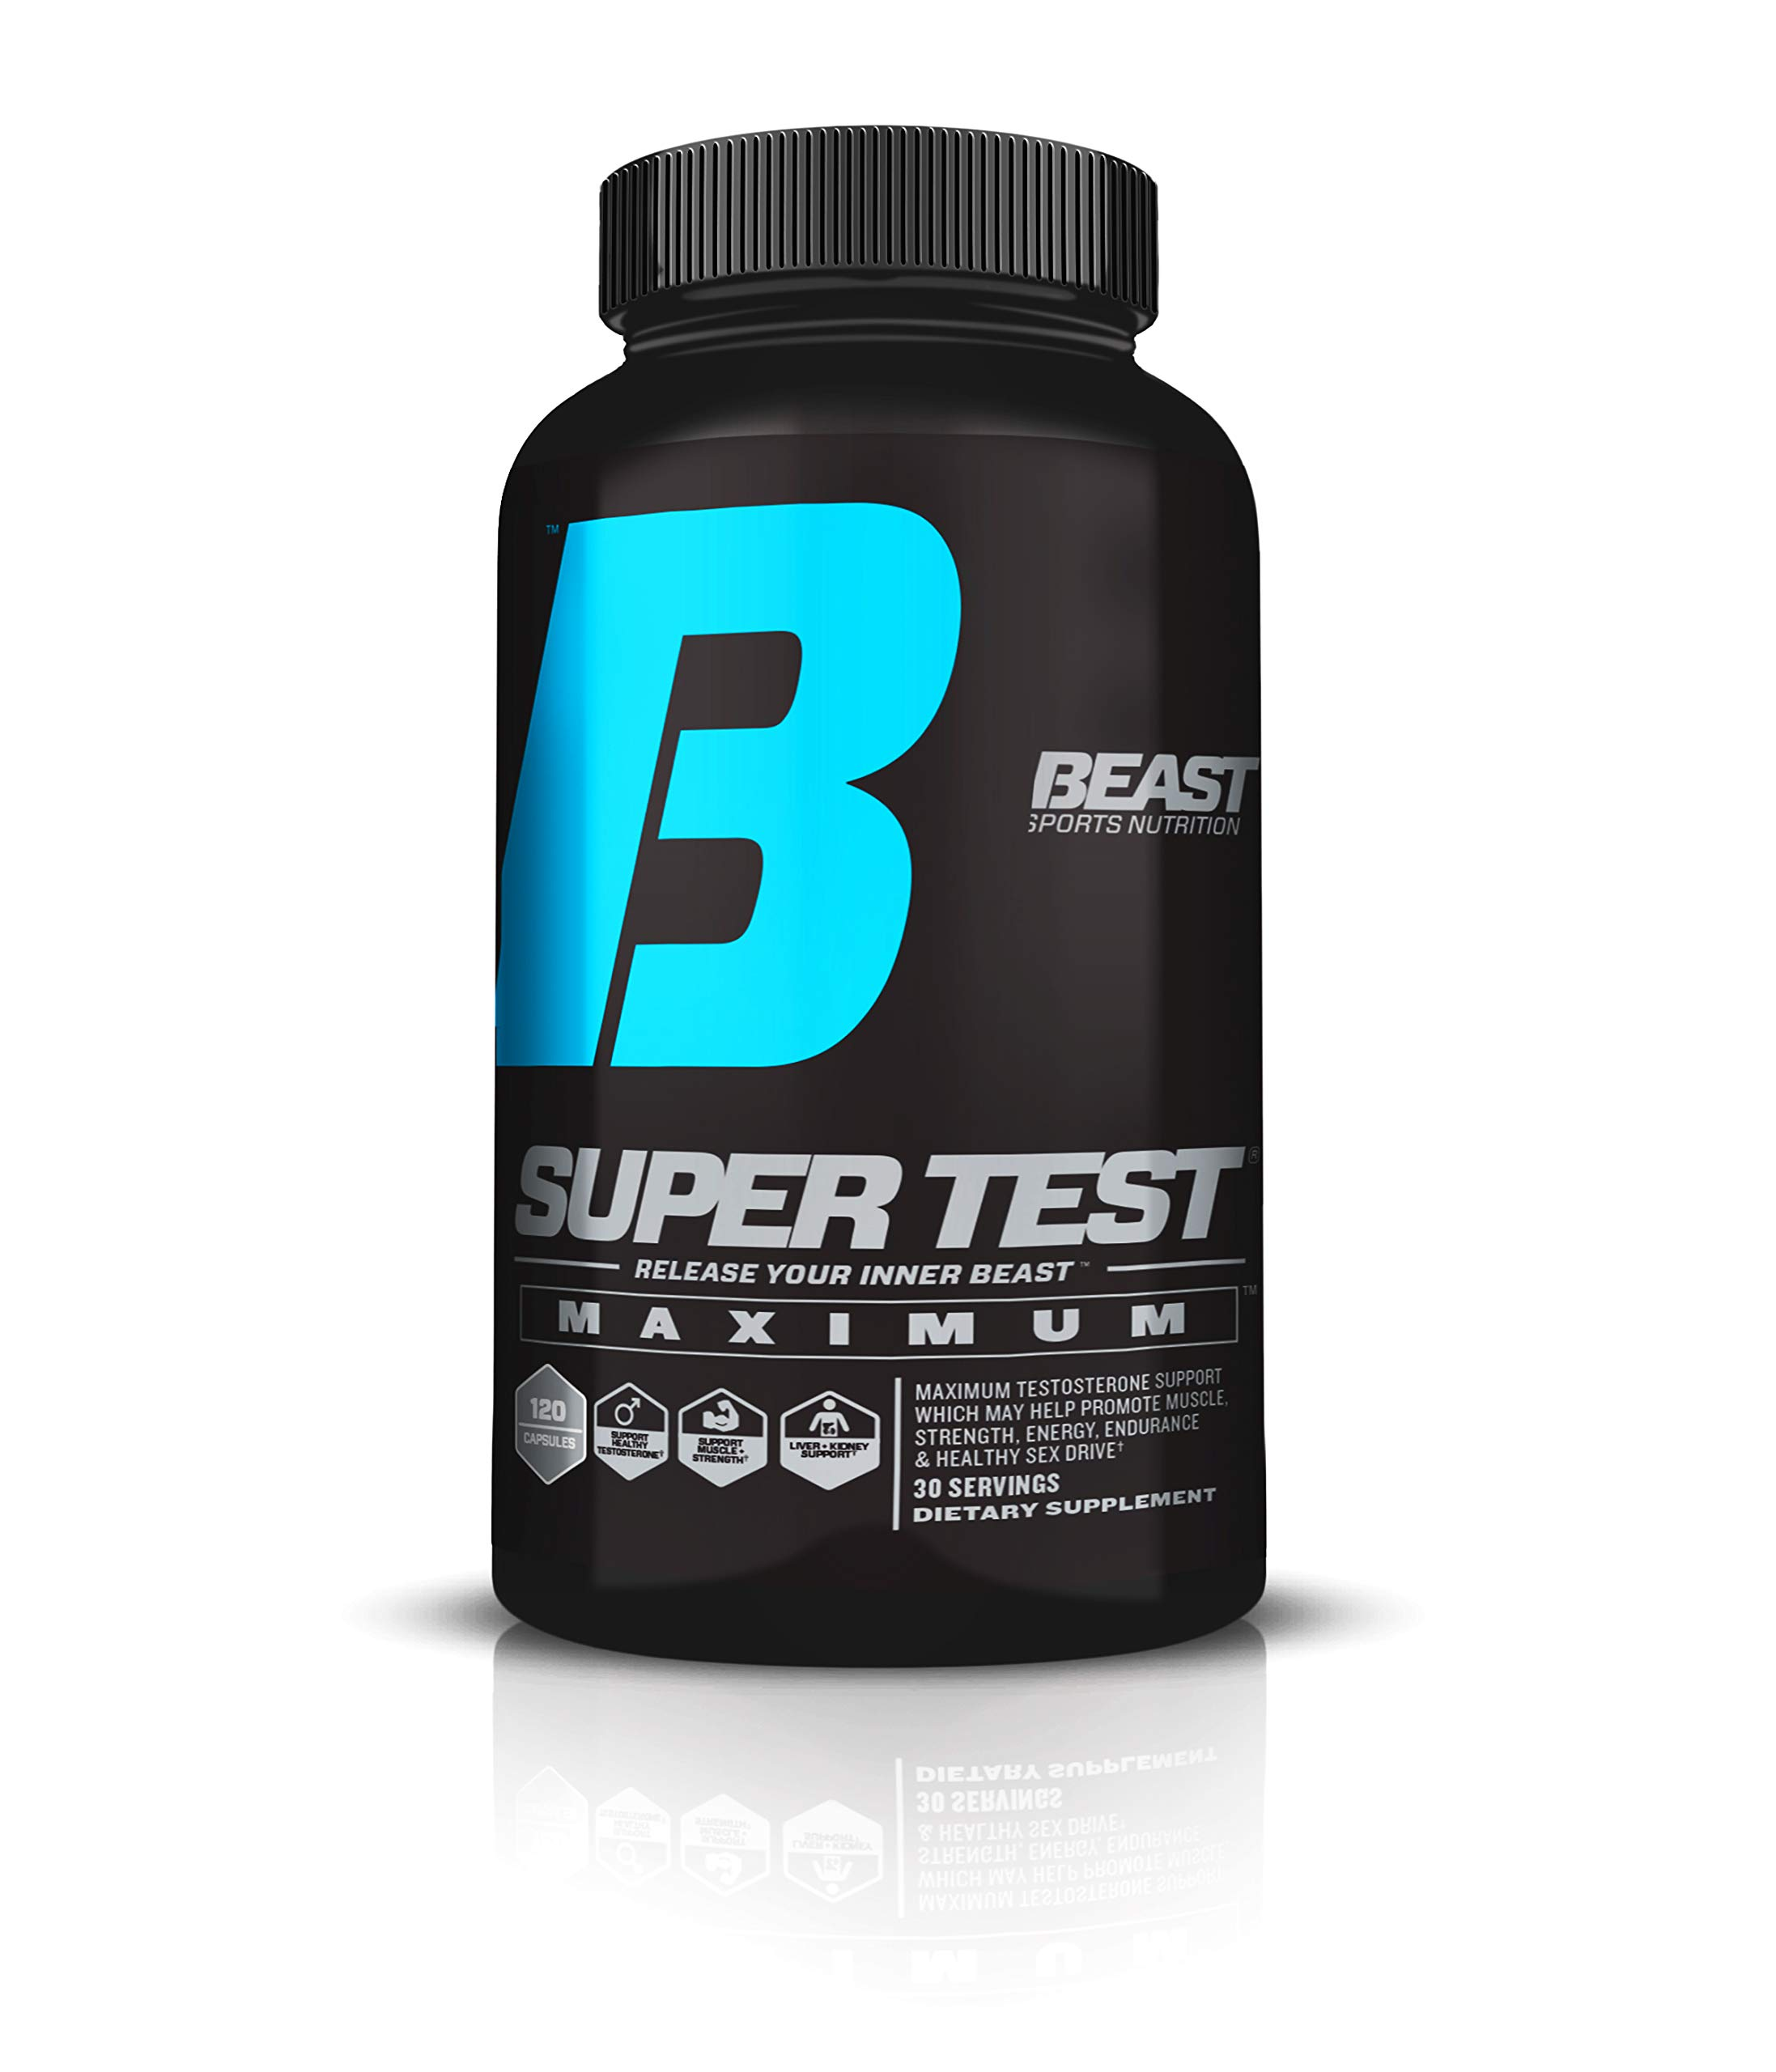 Beast Sports Nutrition - Super Test Maximum Caps - Ultra-Premium All-Inclusive Test Booster - Supports Your Natural Test Levels - Clinical Dosage w/KSM-66, Furostan, S7 & PrimaVie - 120 Capsules by Beast Sports Nutrition (Image #1)